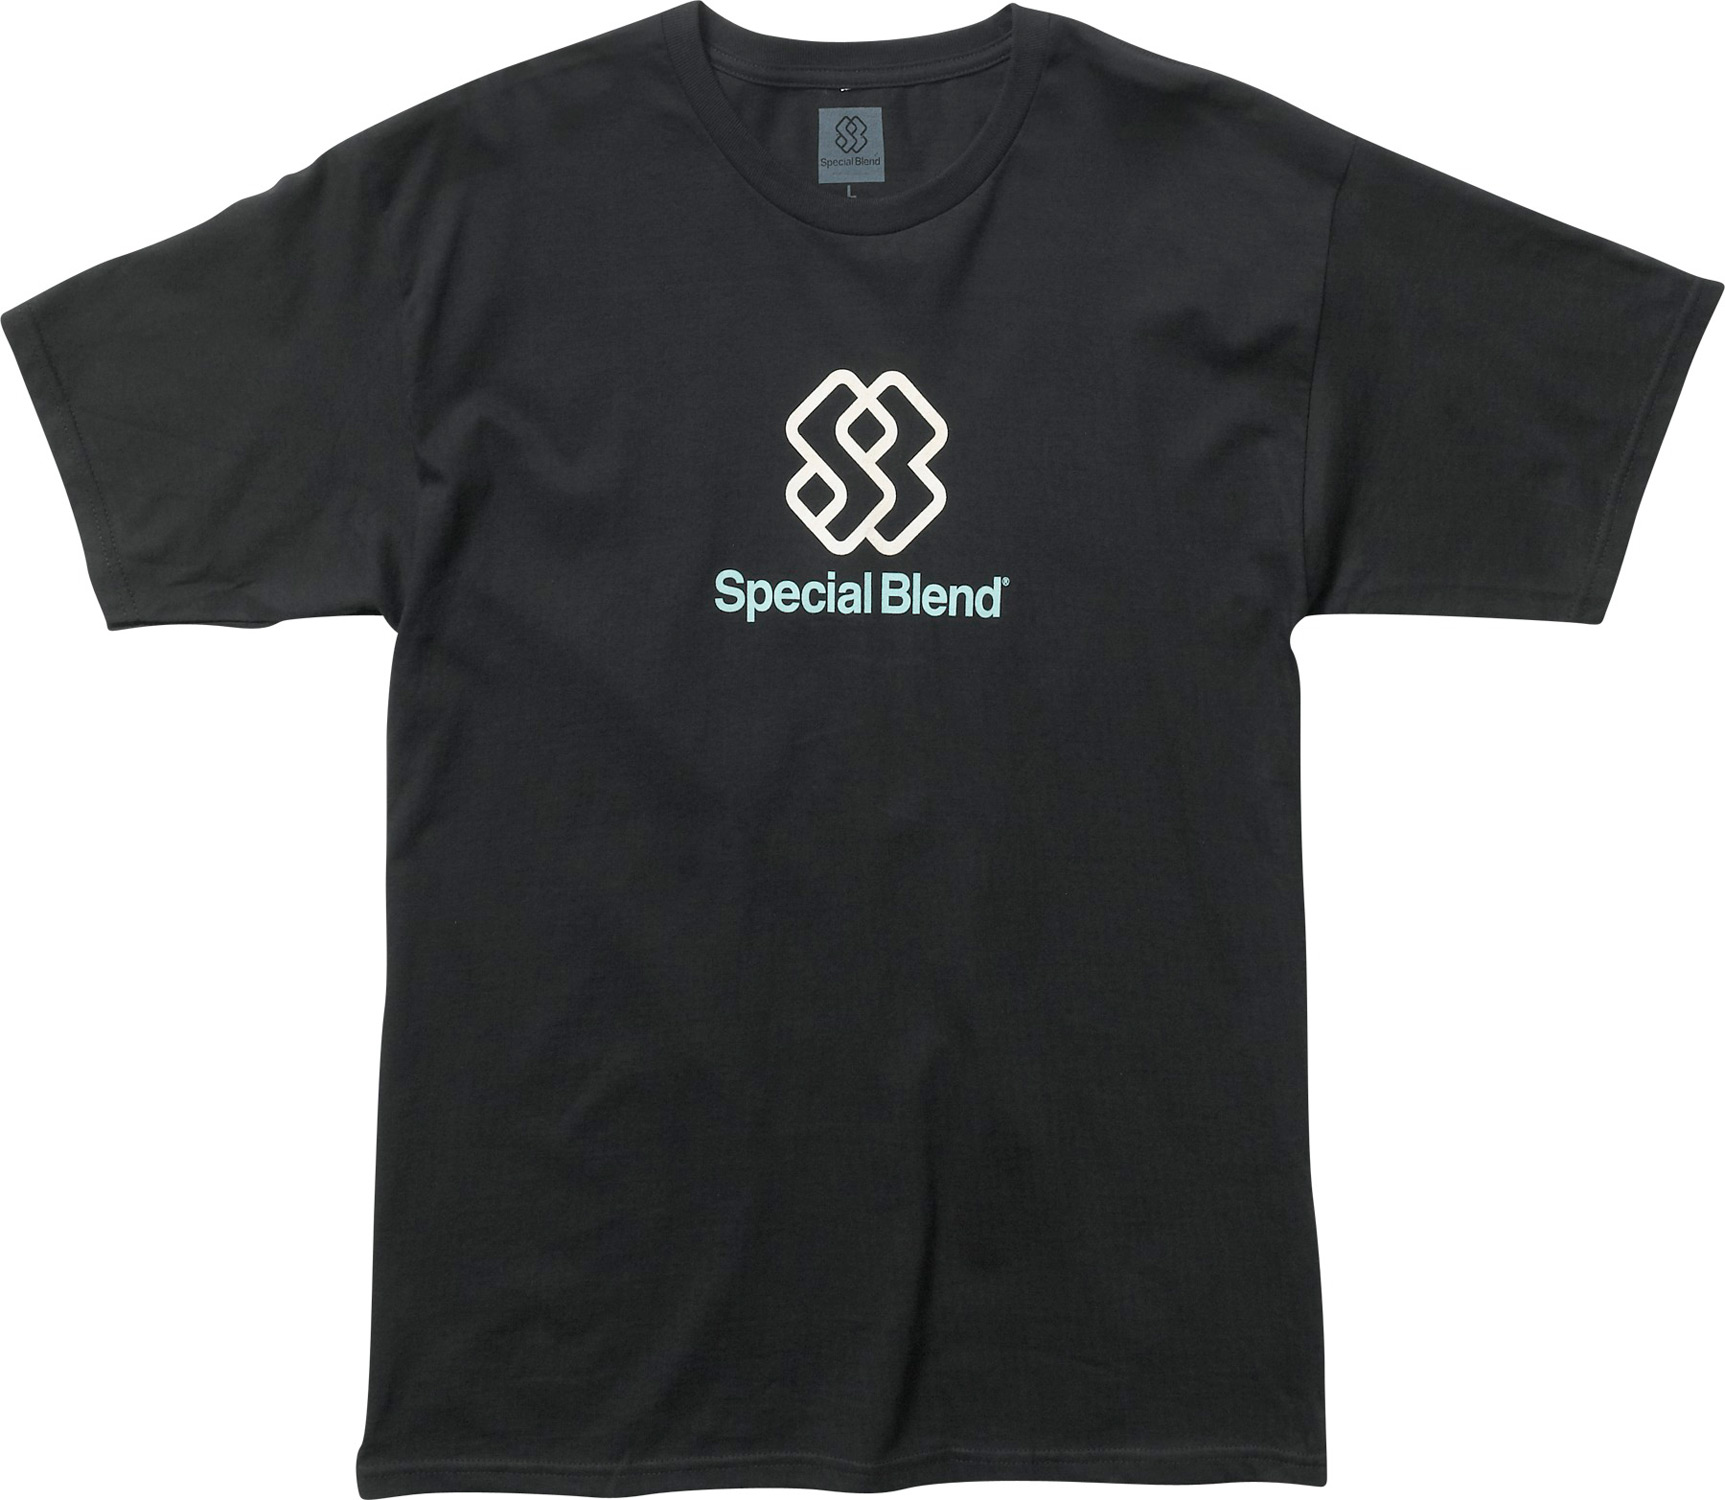 Special Blend Stacked T-Shirt - $11.95